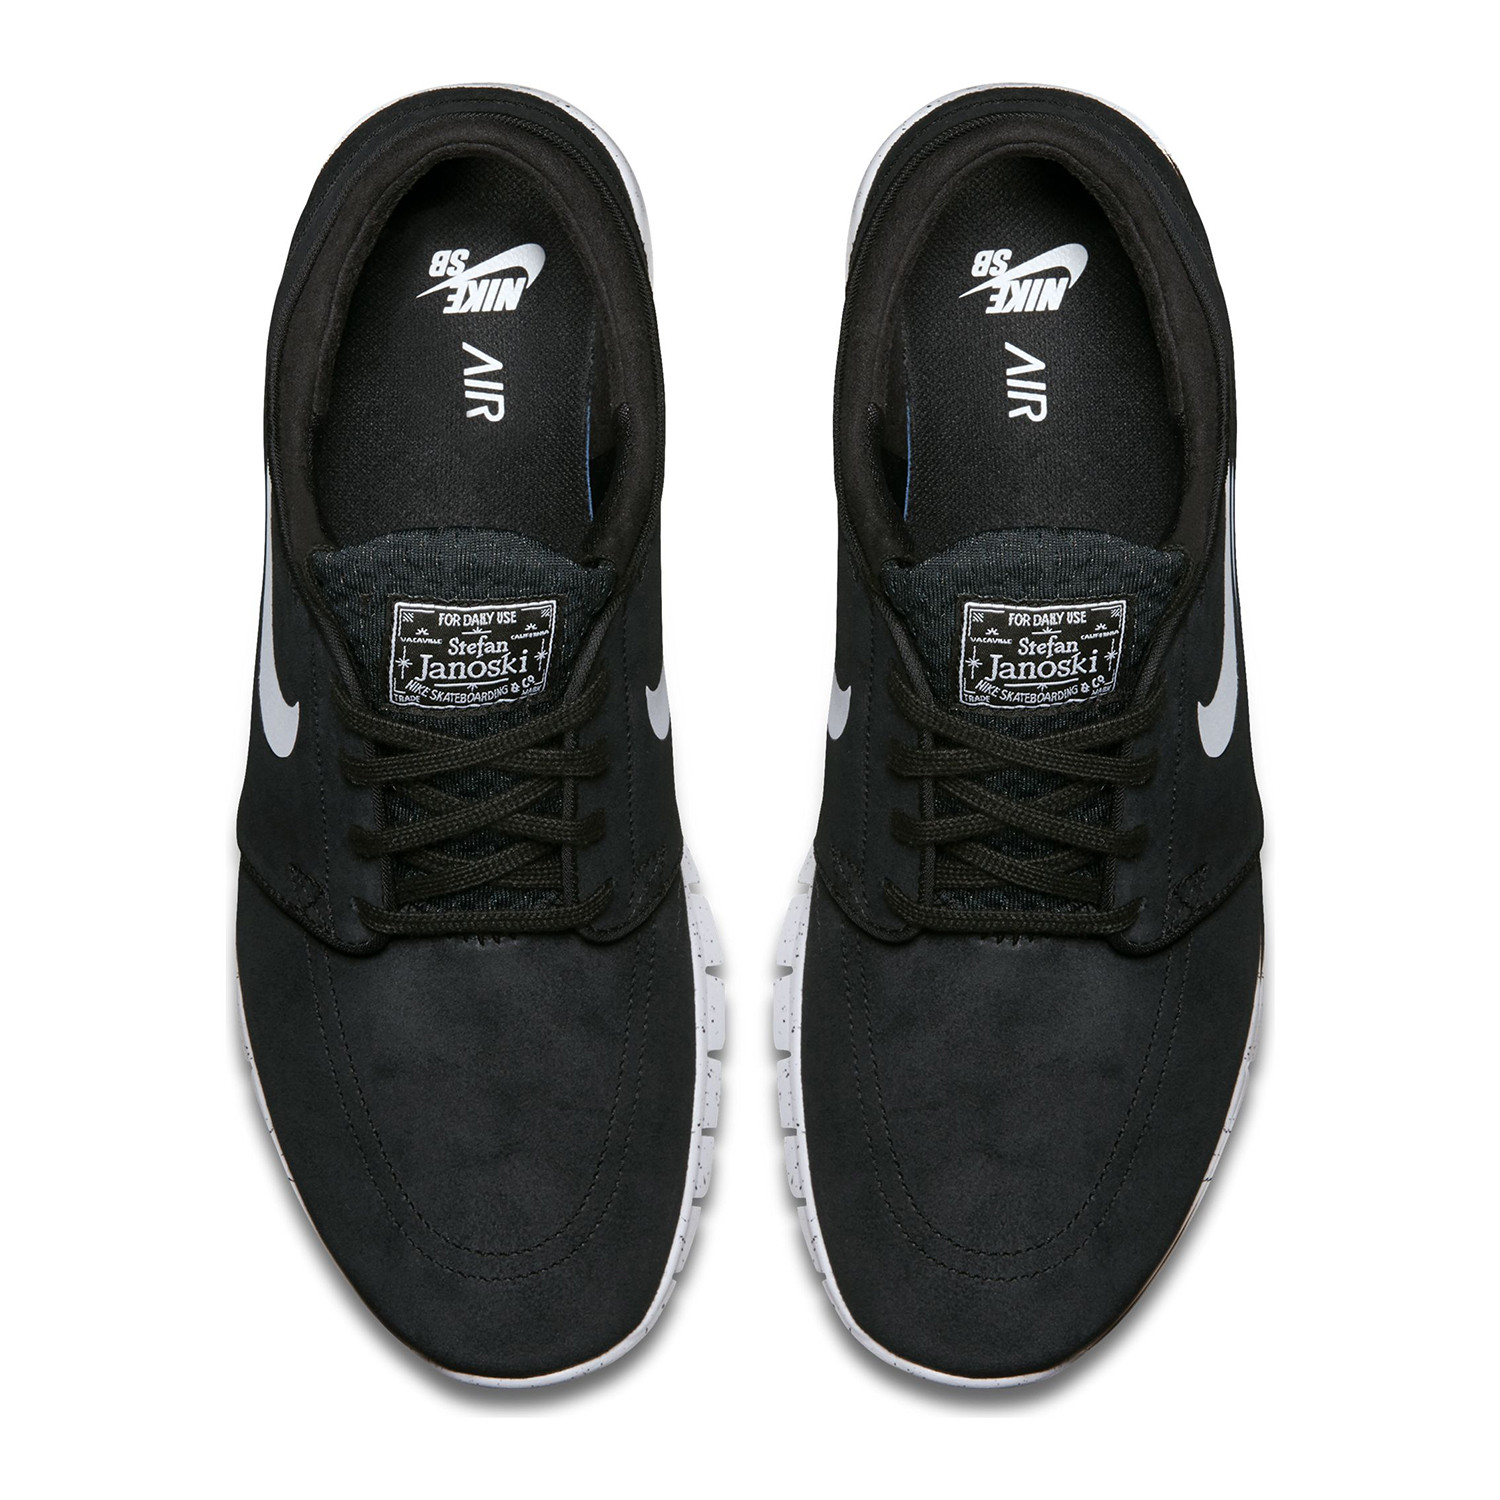 7c41e53c928a Sneakers Nike SB Stefan Janoski Max Leather black white